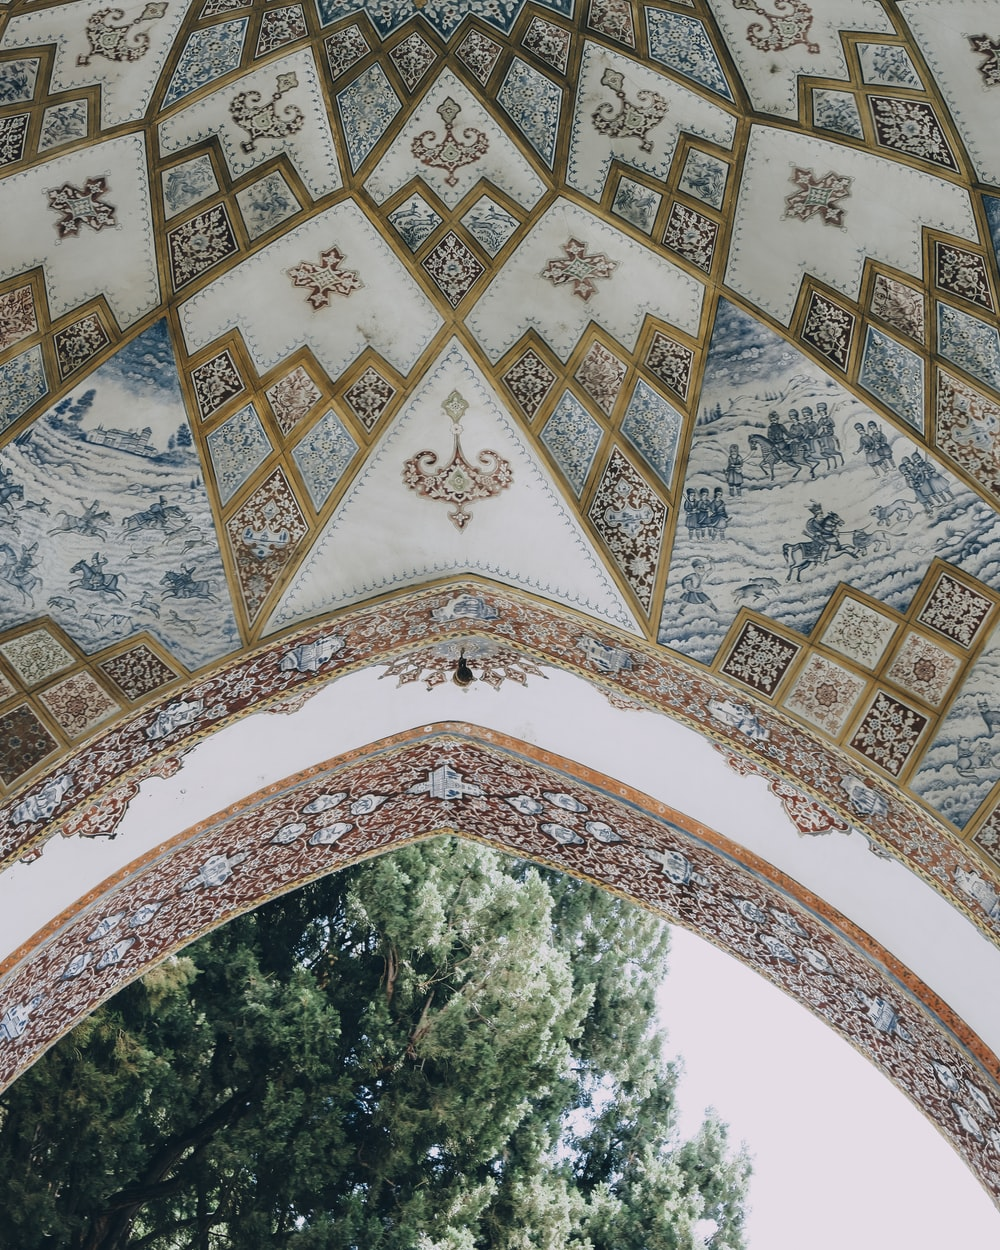 green trees under white and brown floral arch